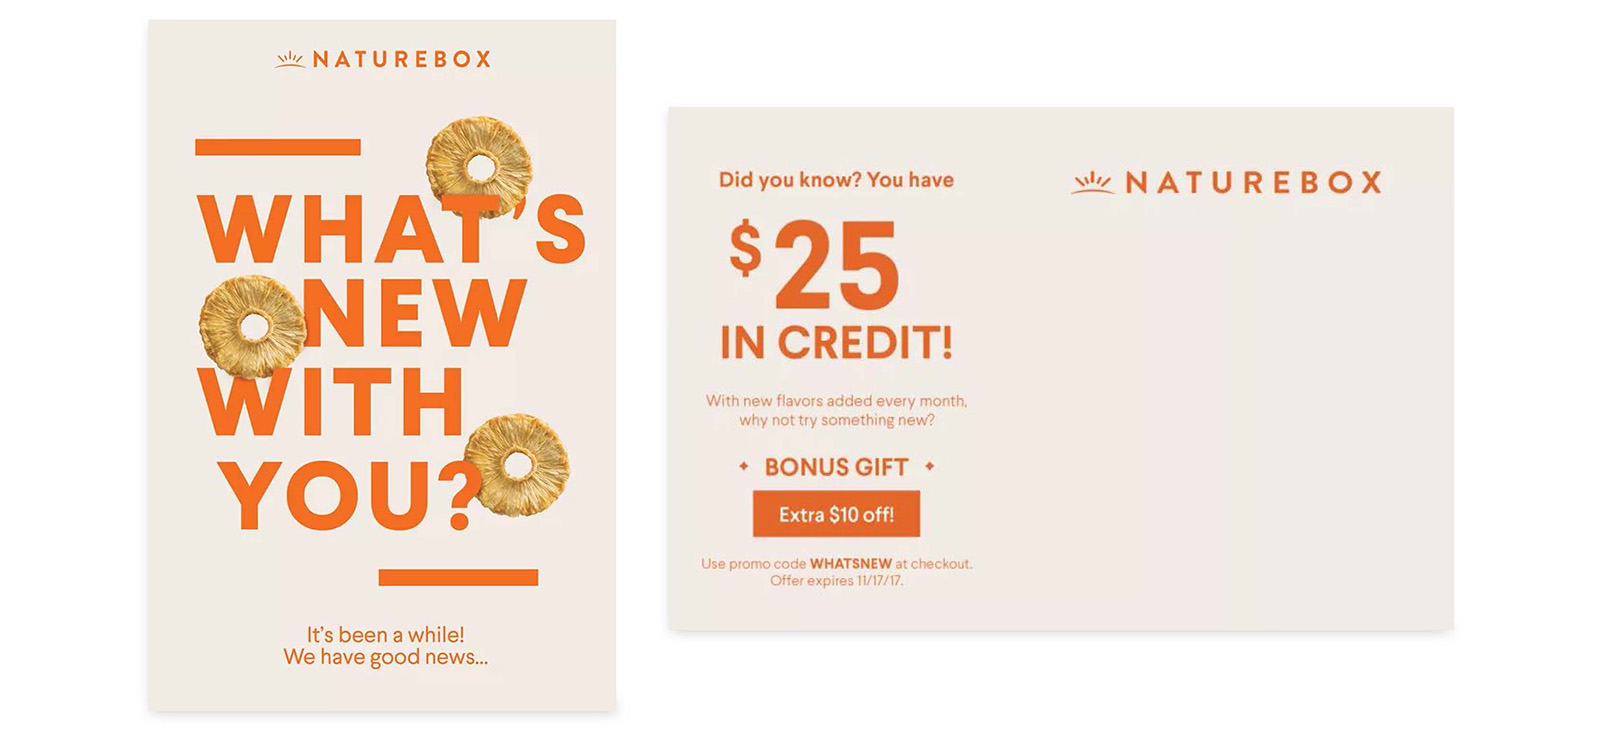 Naturebox-ad